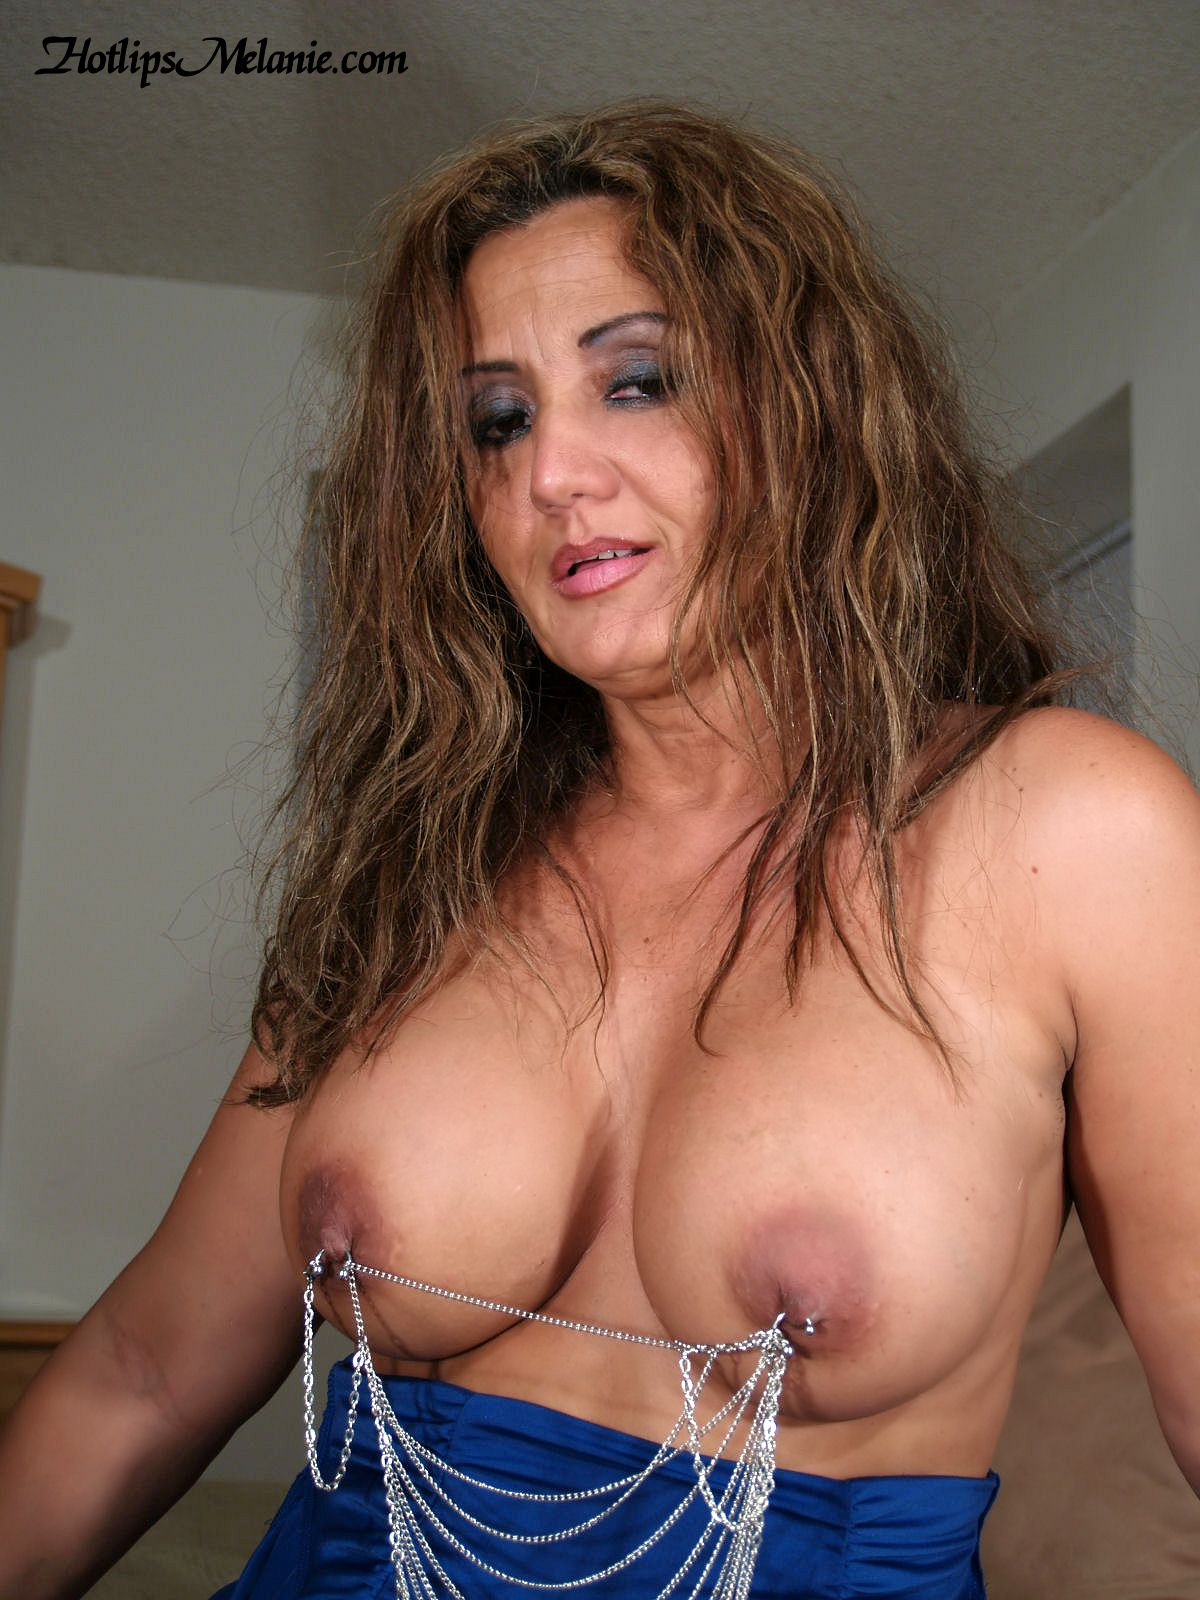 Photos Of Pierced Nipples 76